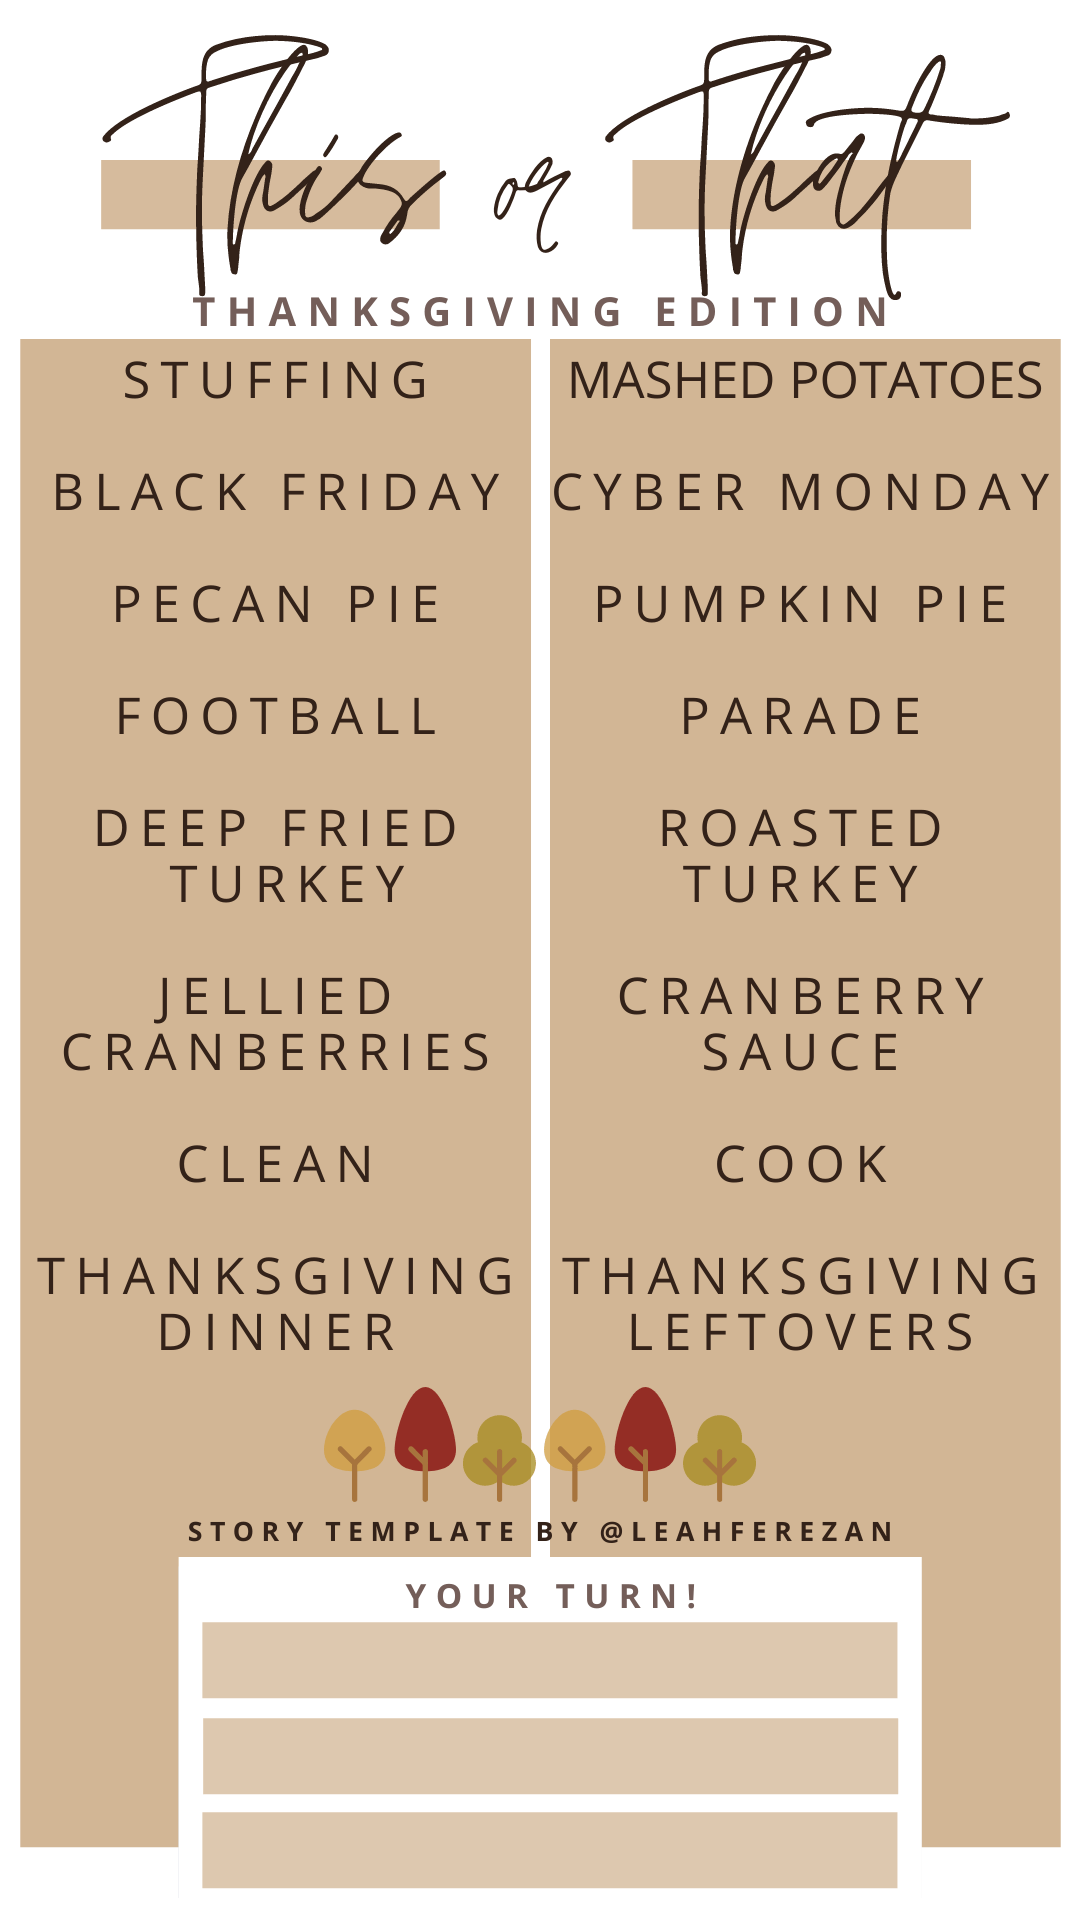 Thanksgiving Instagram Template